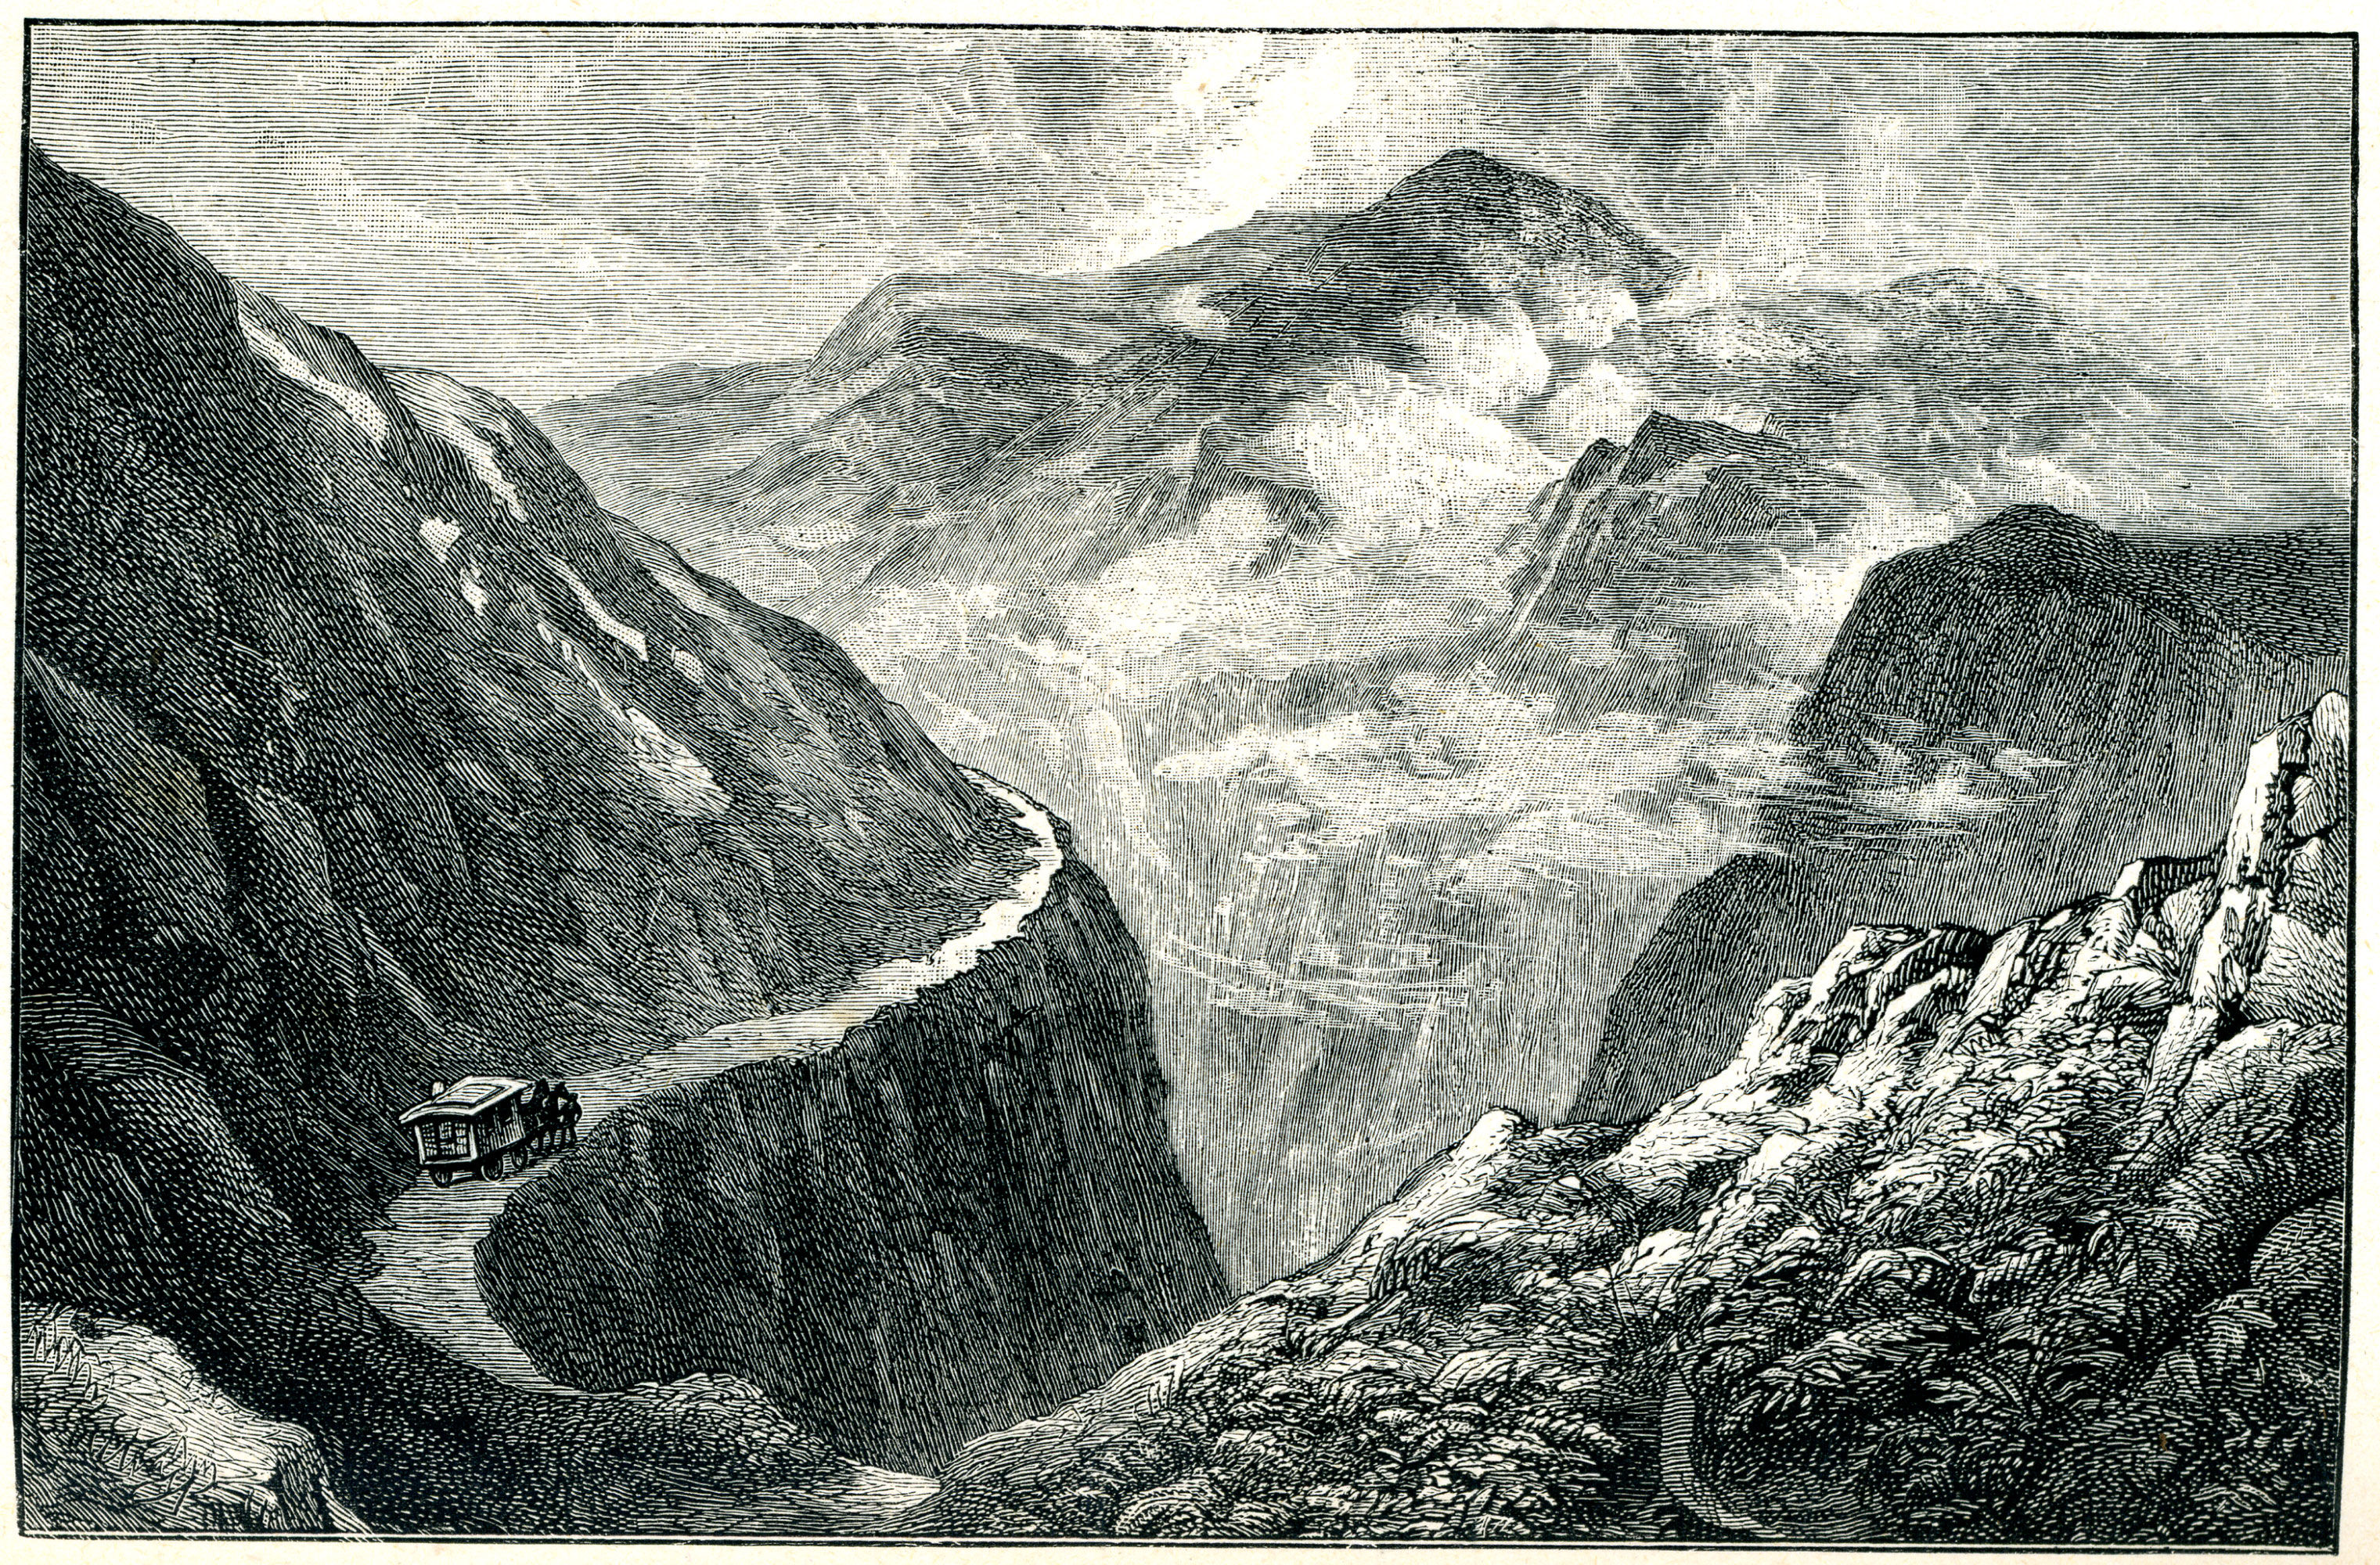 Illustration of a caravan travelling along a road in the mountains